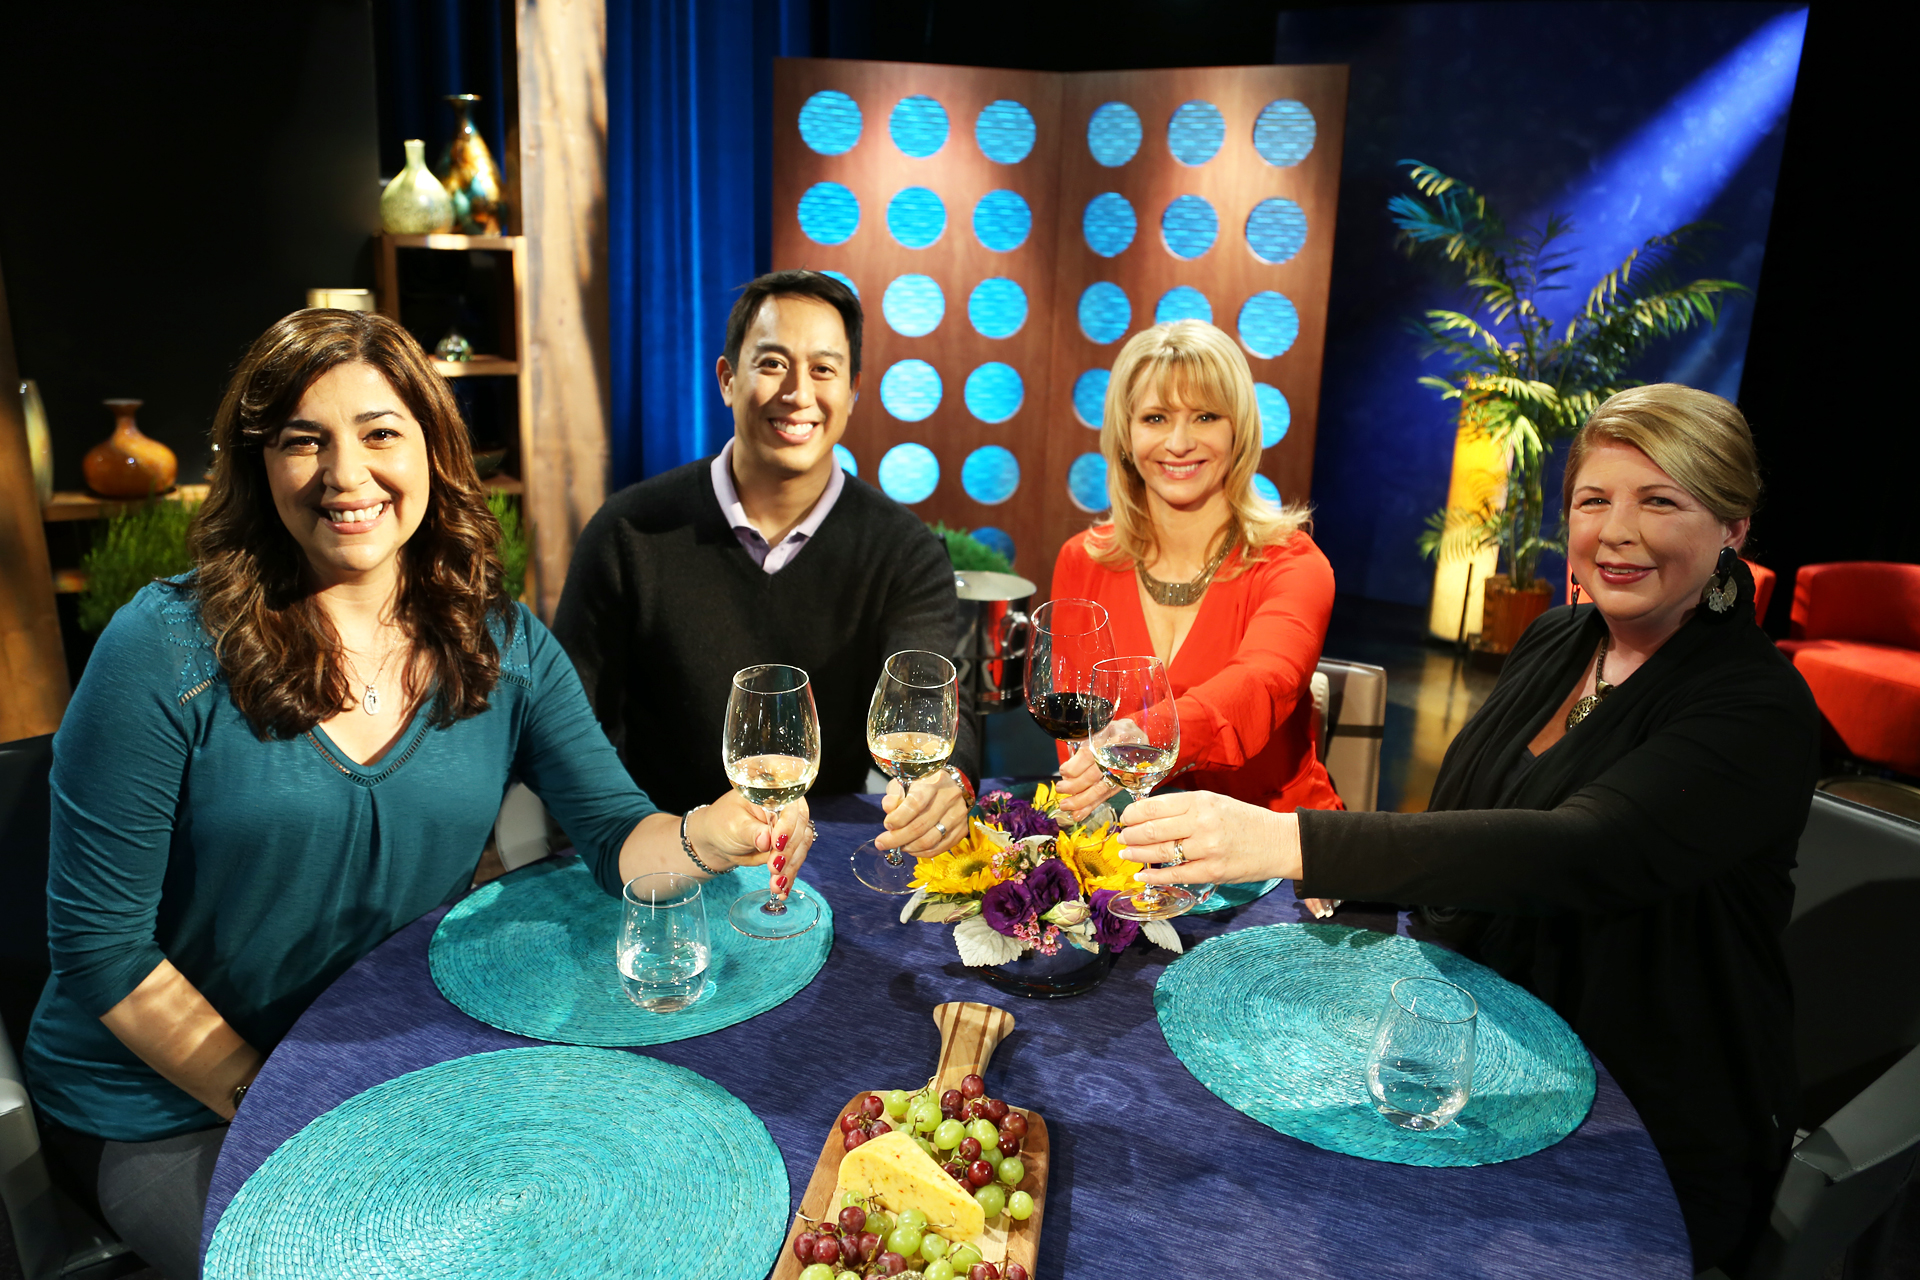 Host Leslie Sbrocco and guests on the set of the premiere episode of season 11.